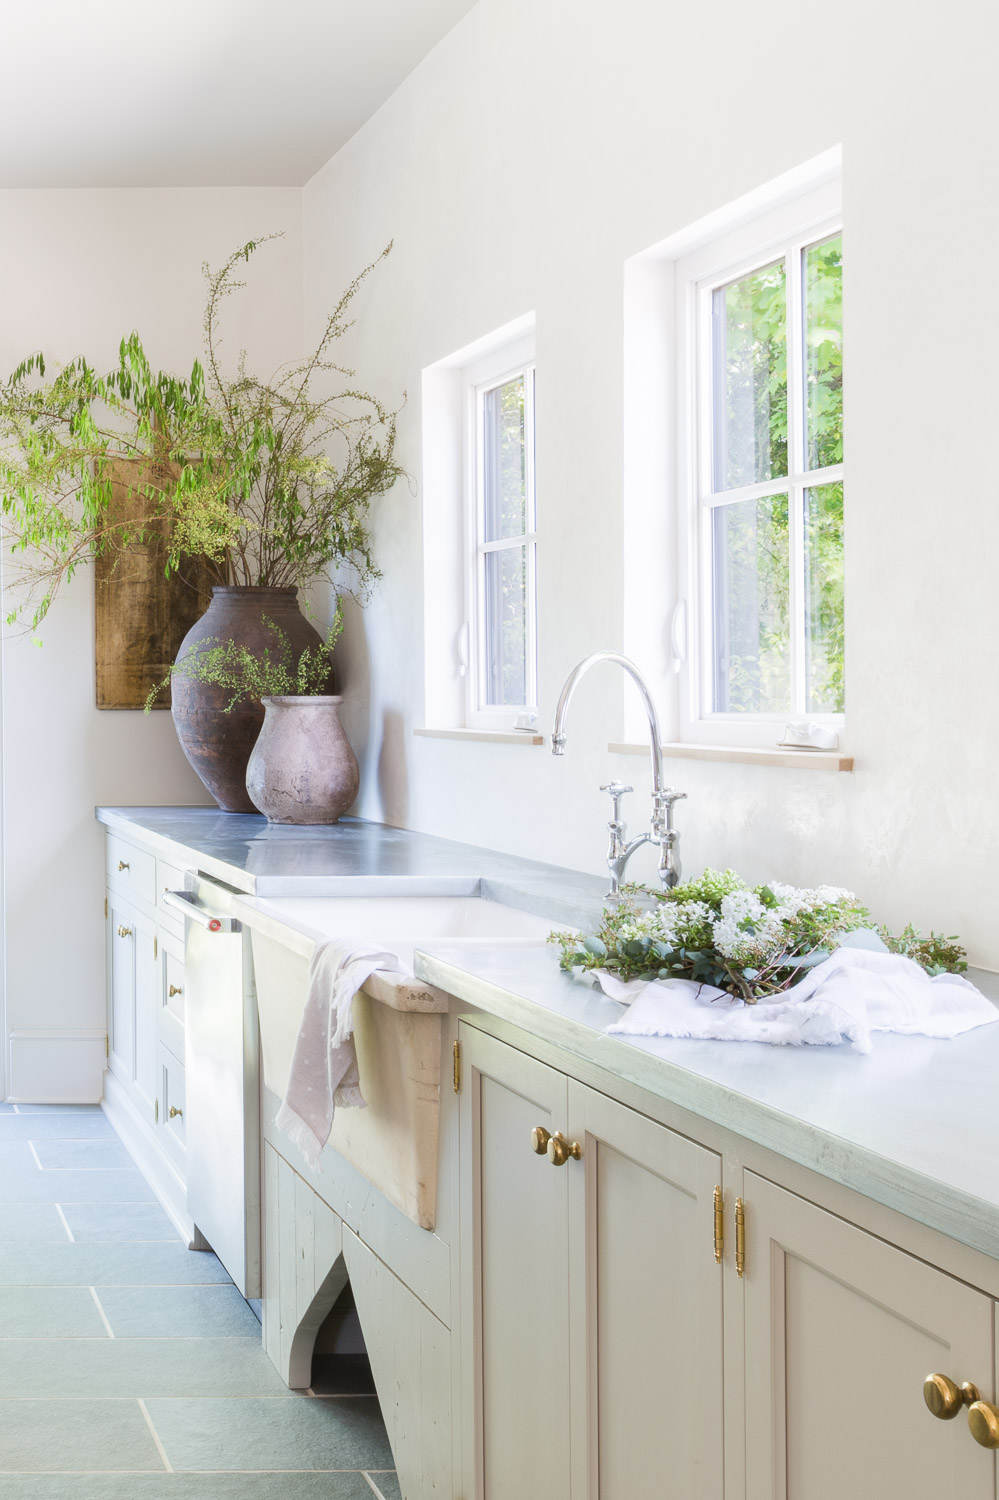 European Inspired Kitchen by Kaemingk Design.  Photo: Alyssa Rosenheck